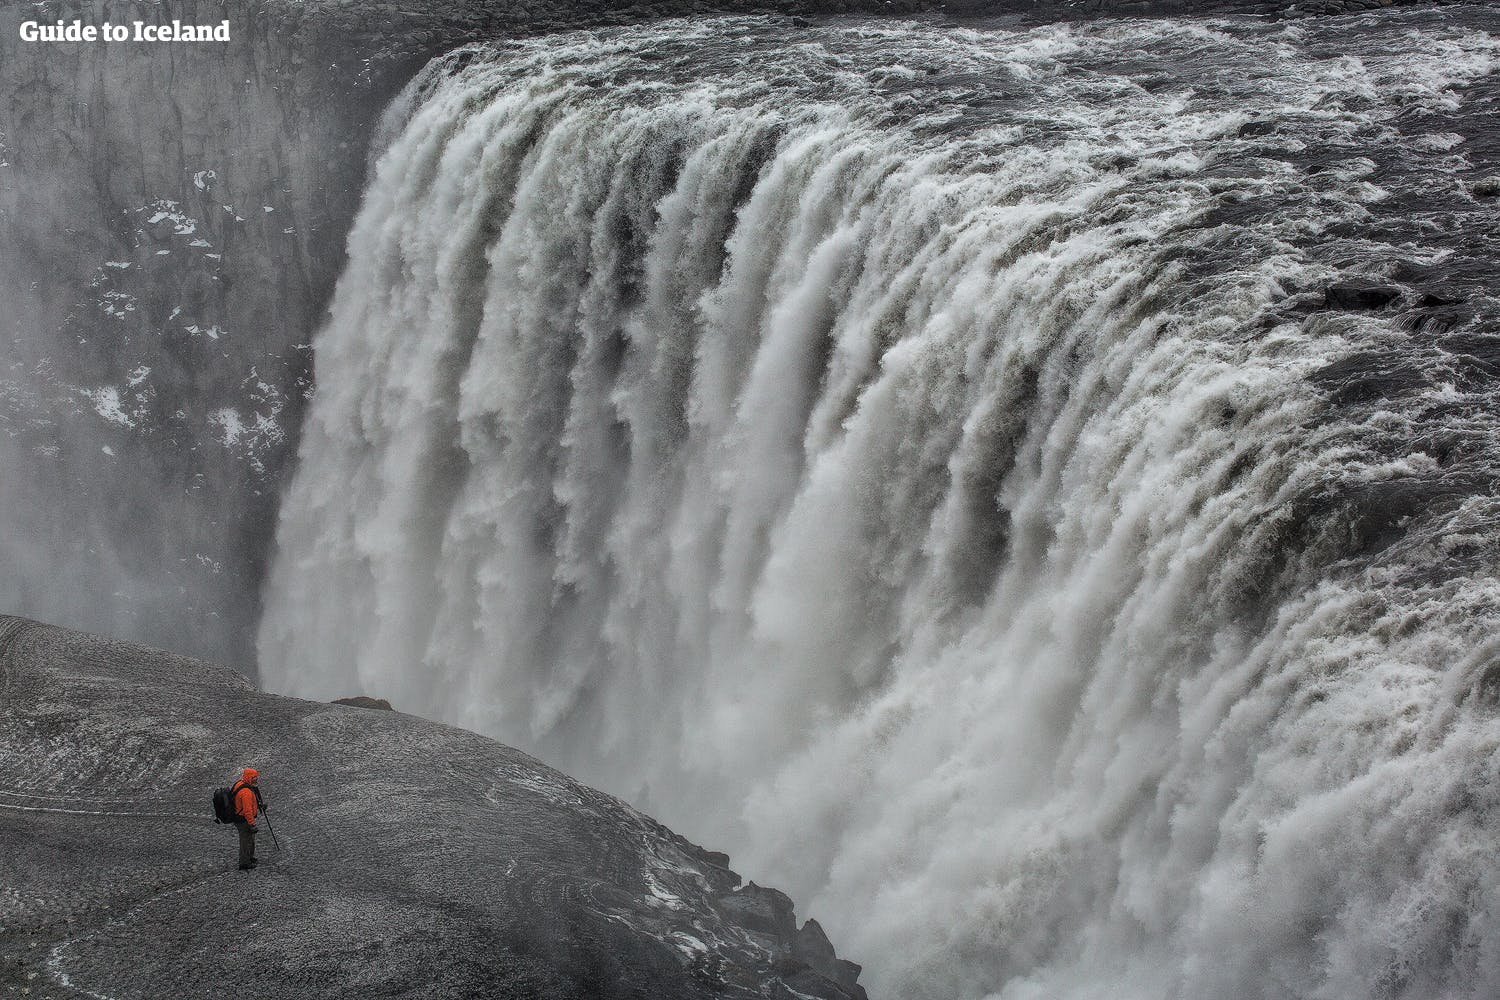 Dettifoss is located in the Highlands of north Iceland and is more powerful than any other waterfall in Europe.